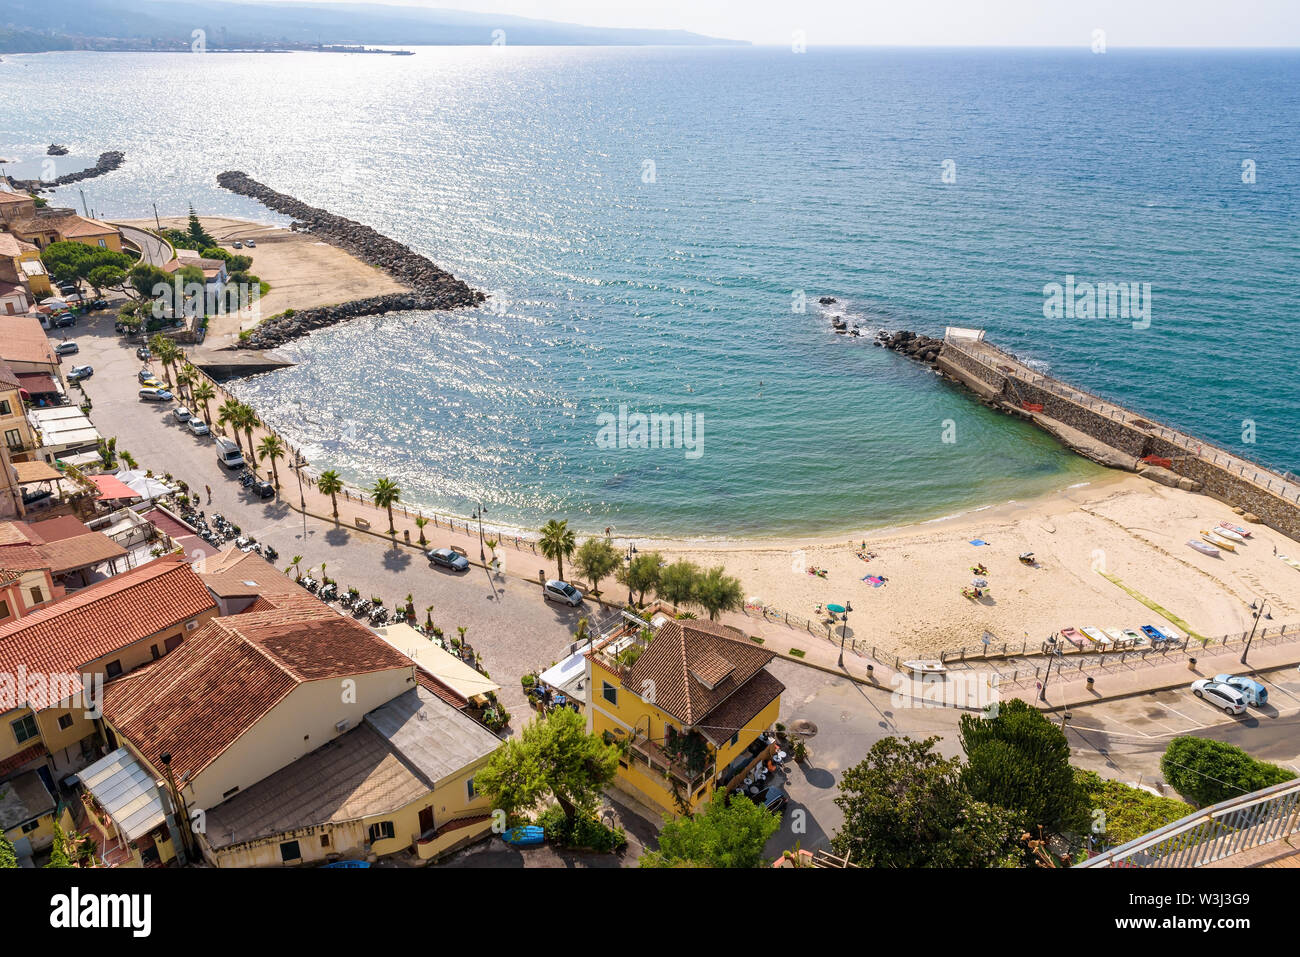 Aerial view of beach in Pizzo town, Calabria, Italy Stock Photo